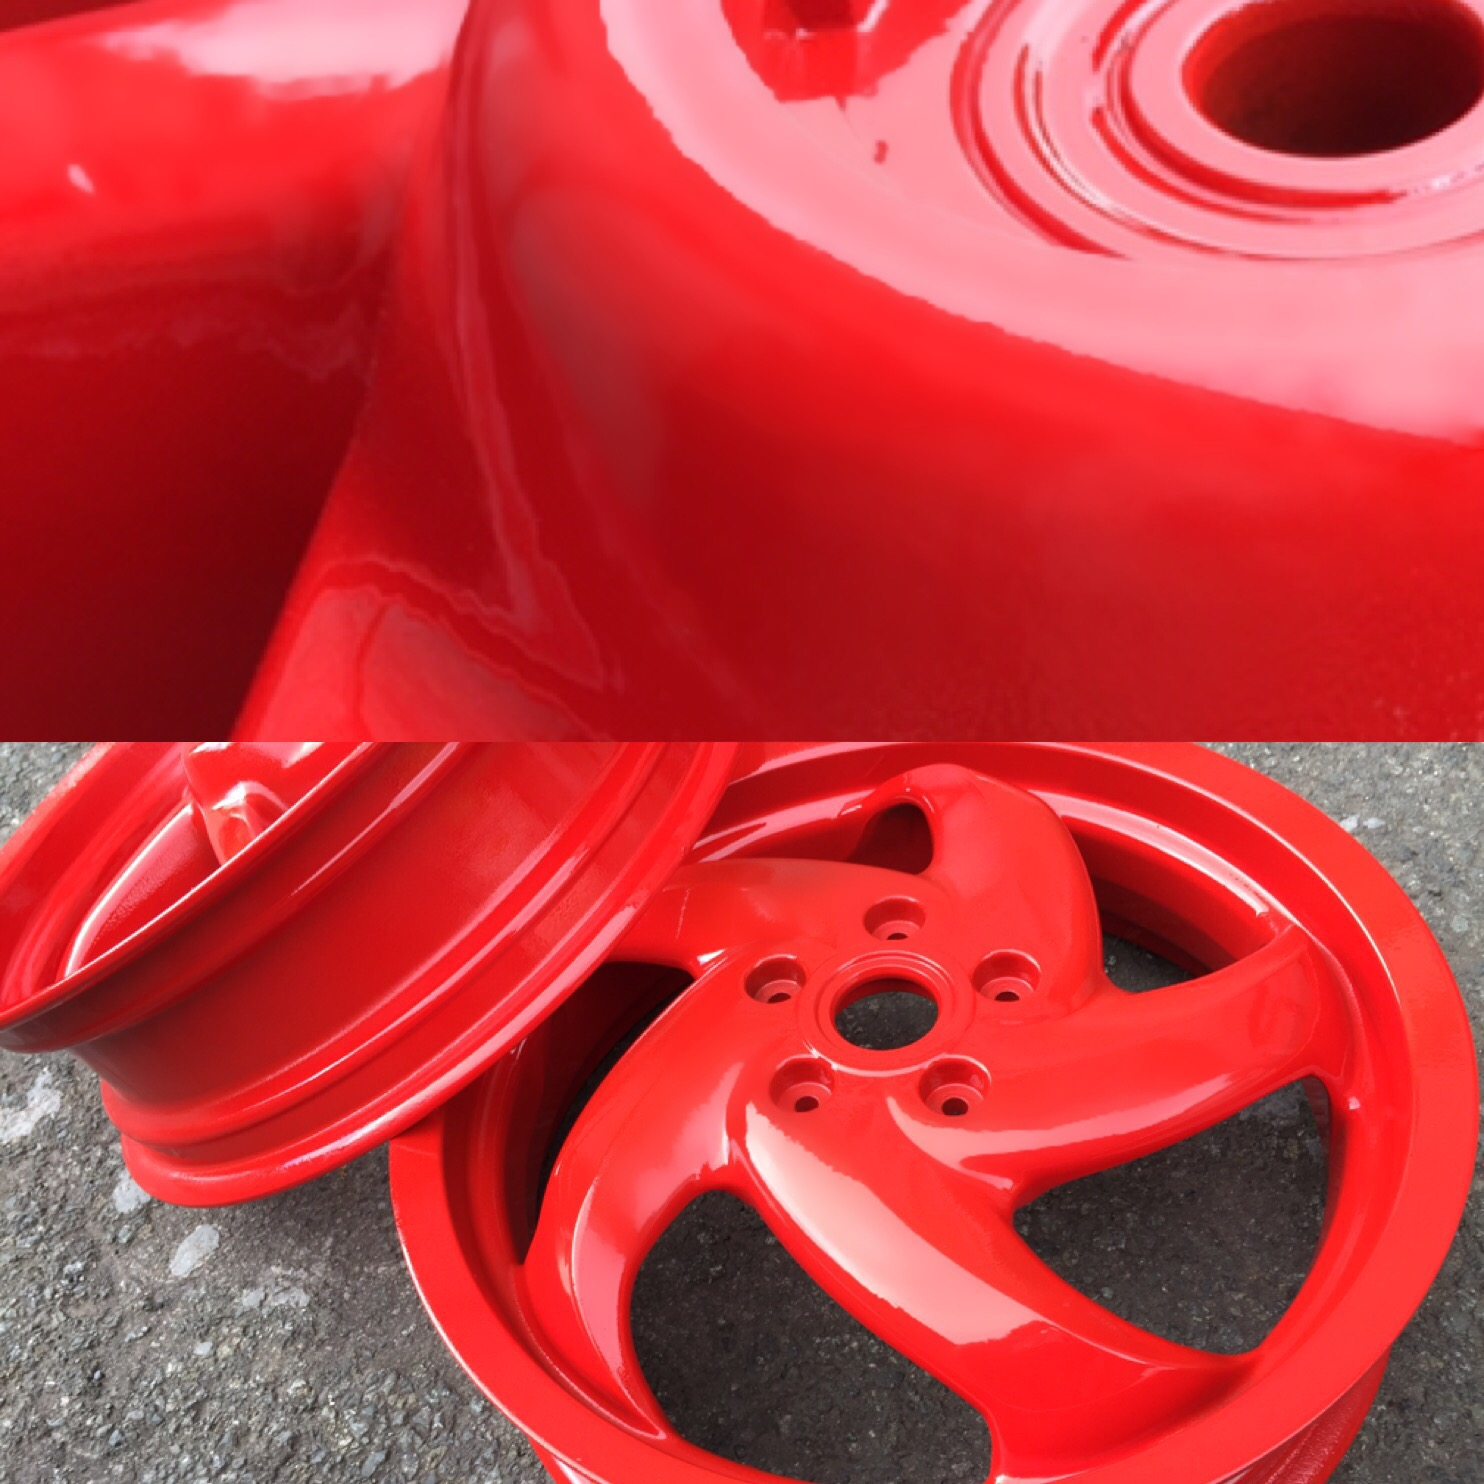 Red - High Gloss finish